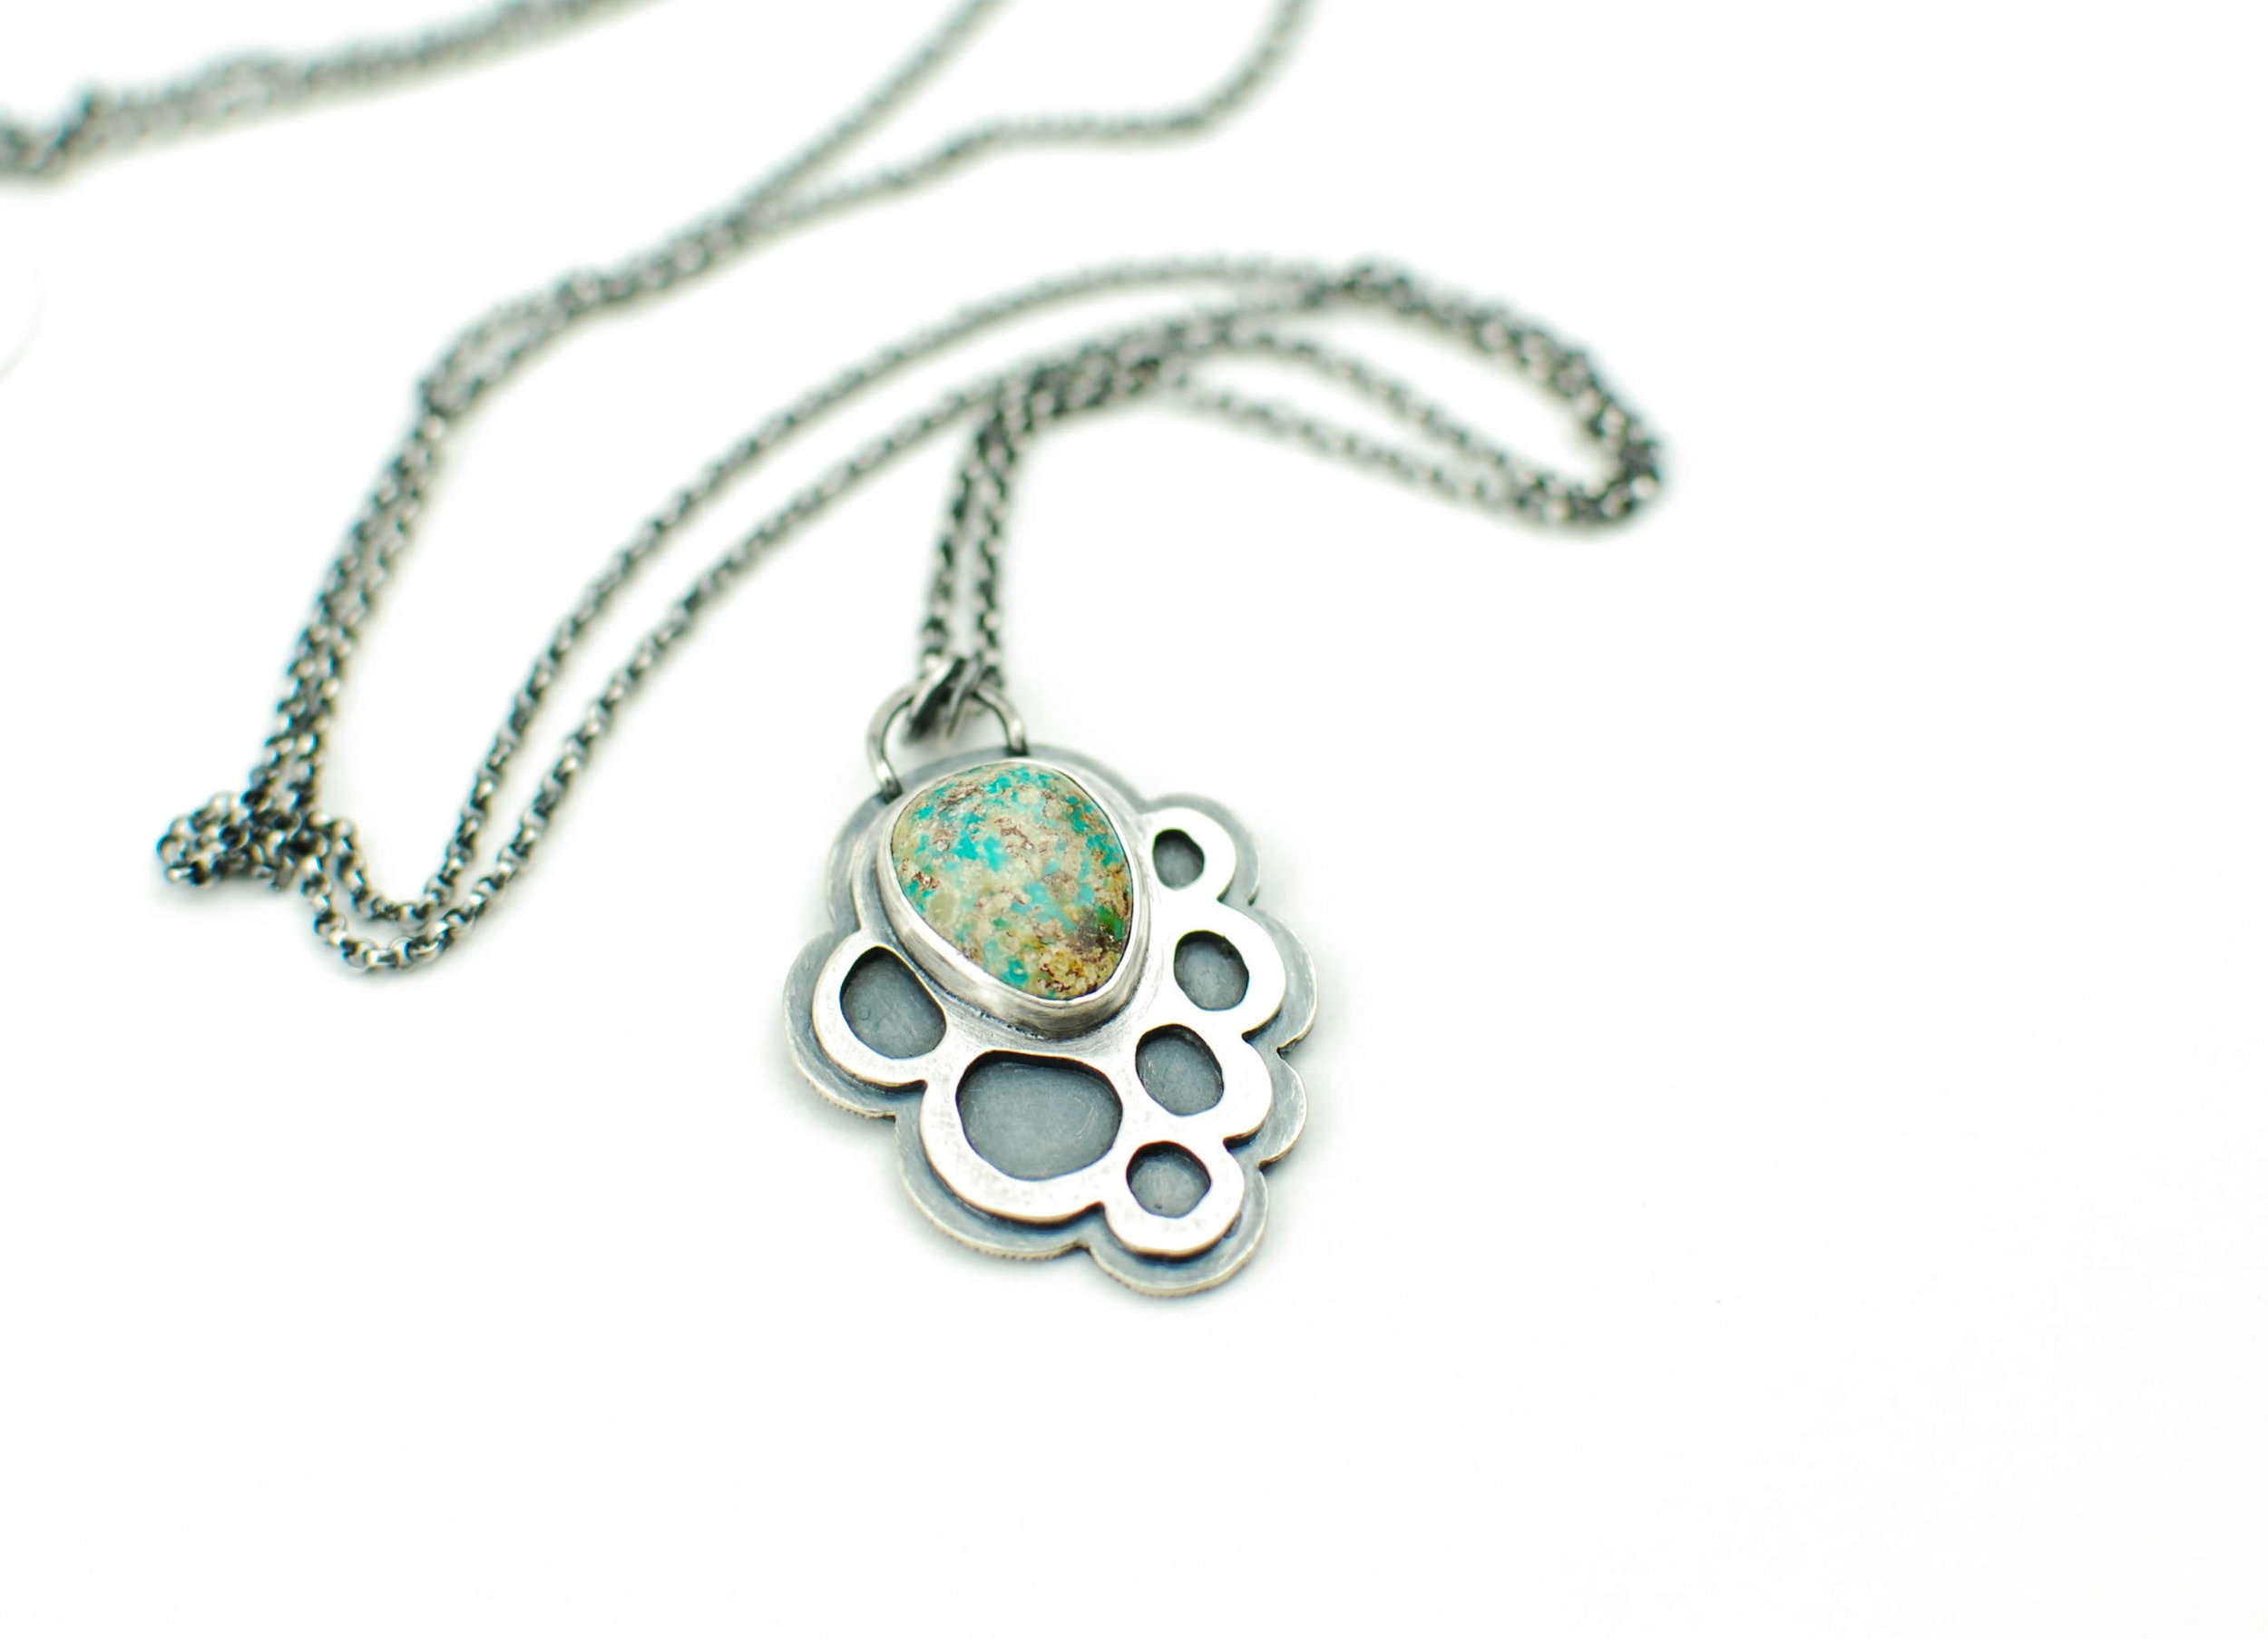 turquoise necklace7.jpg